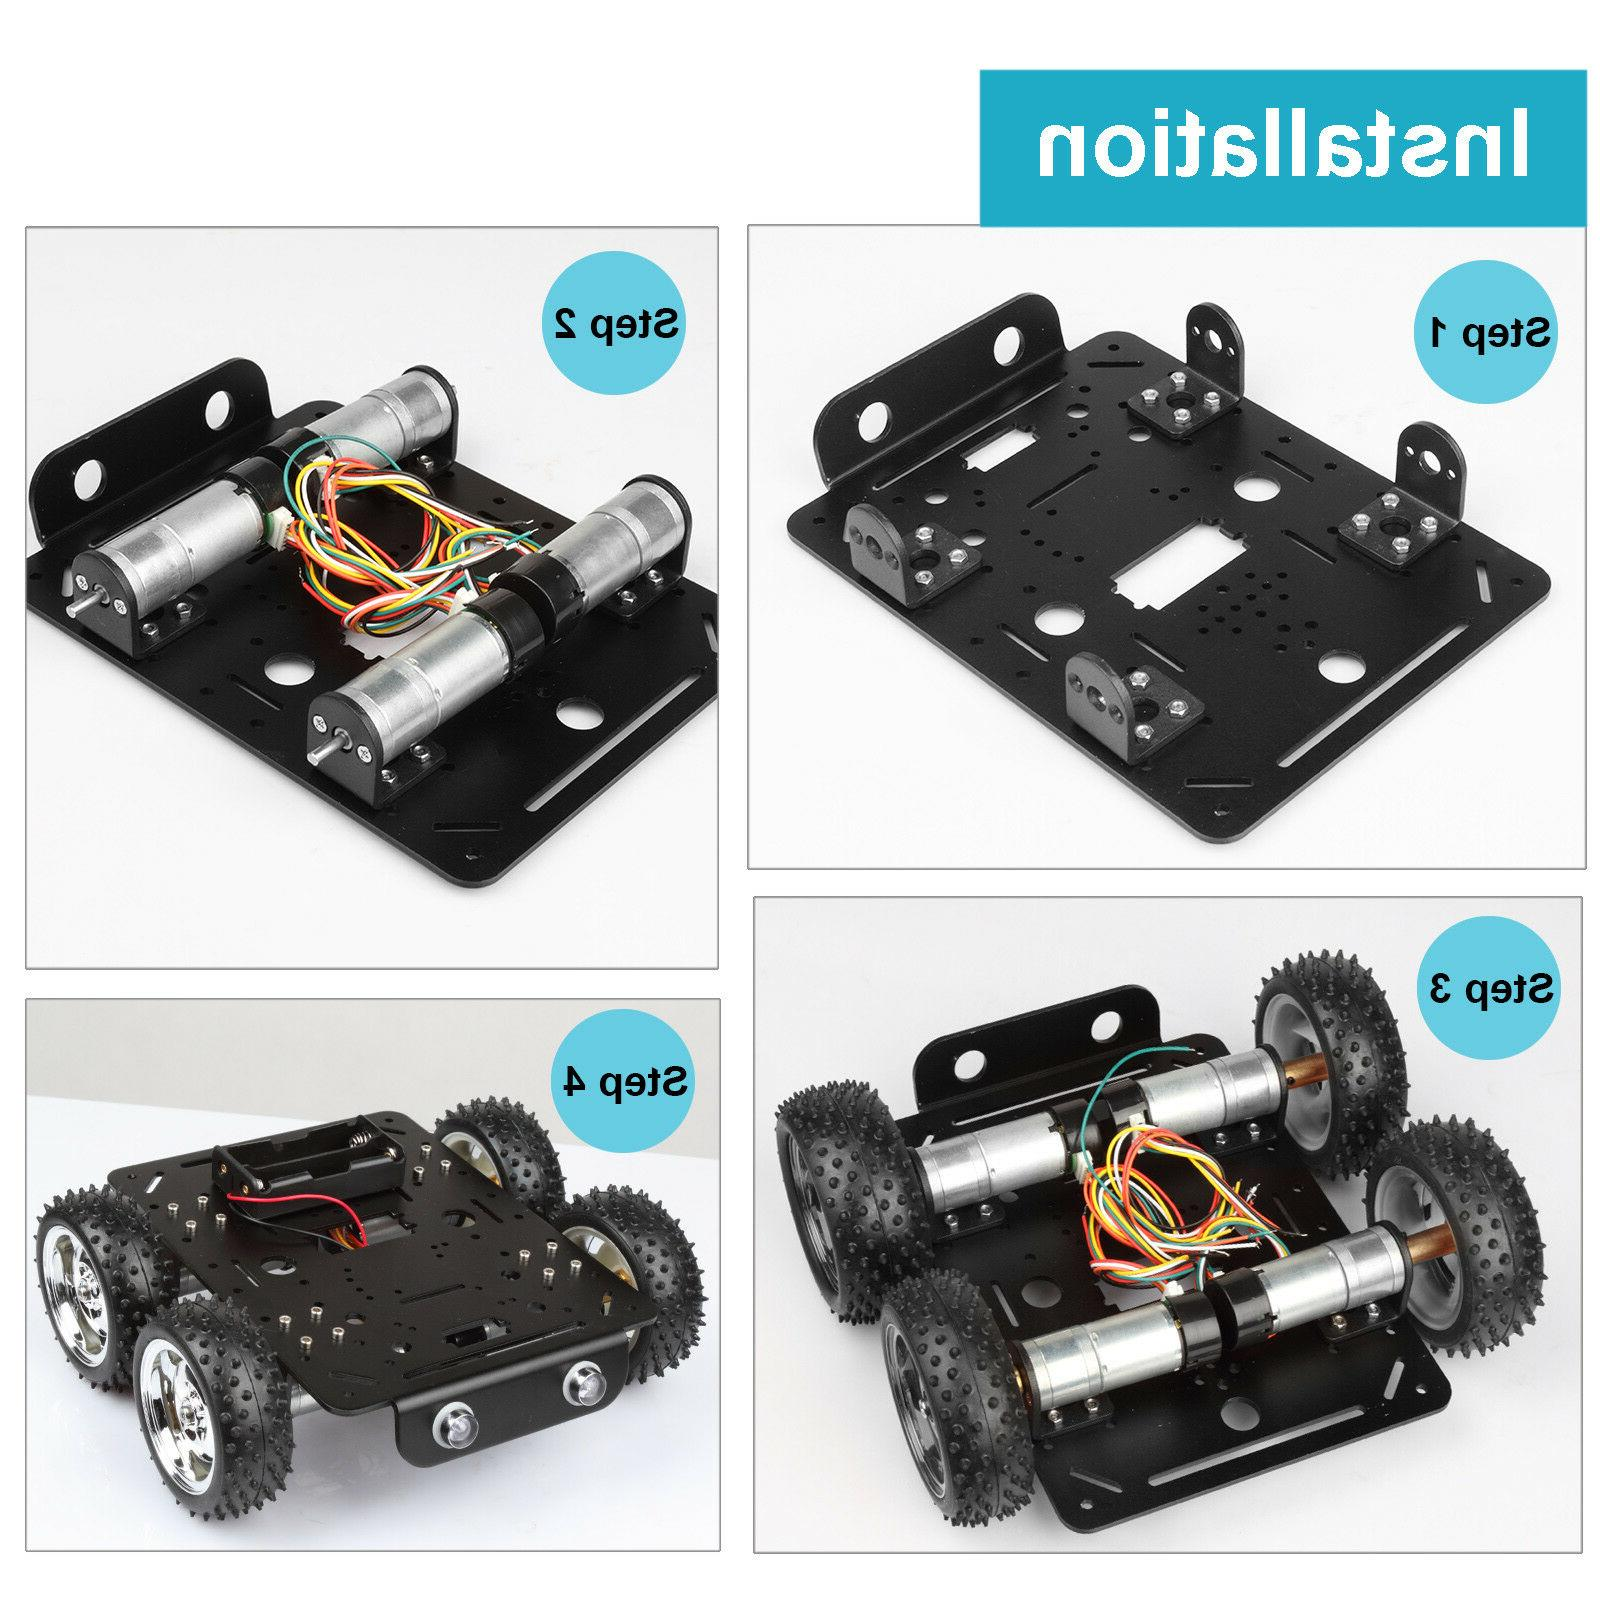 4WD Obstacles Smart Chassis for DIY